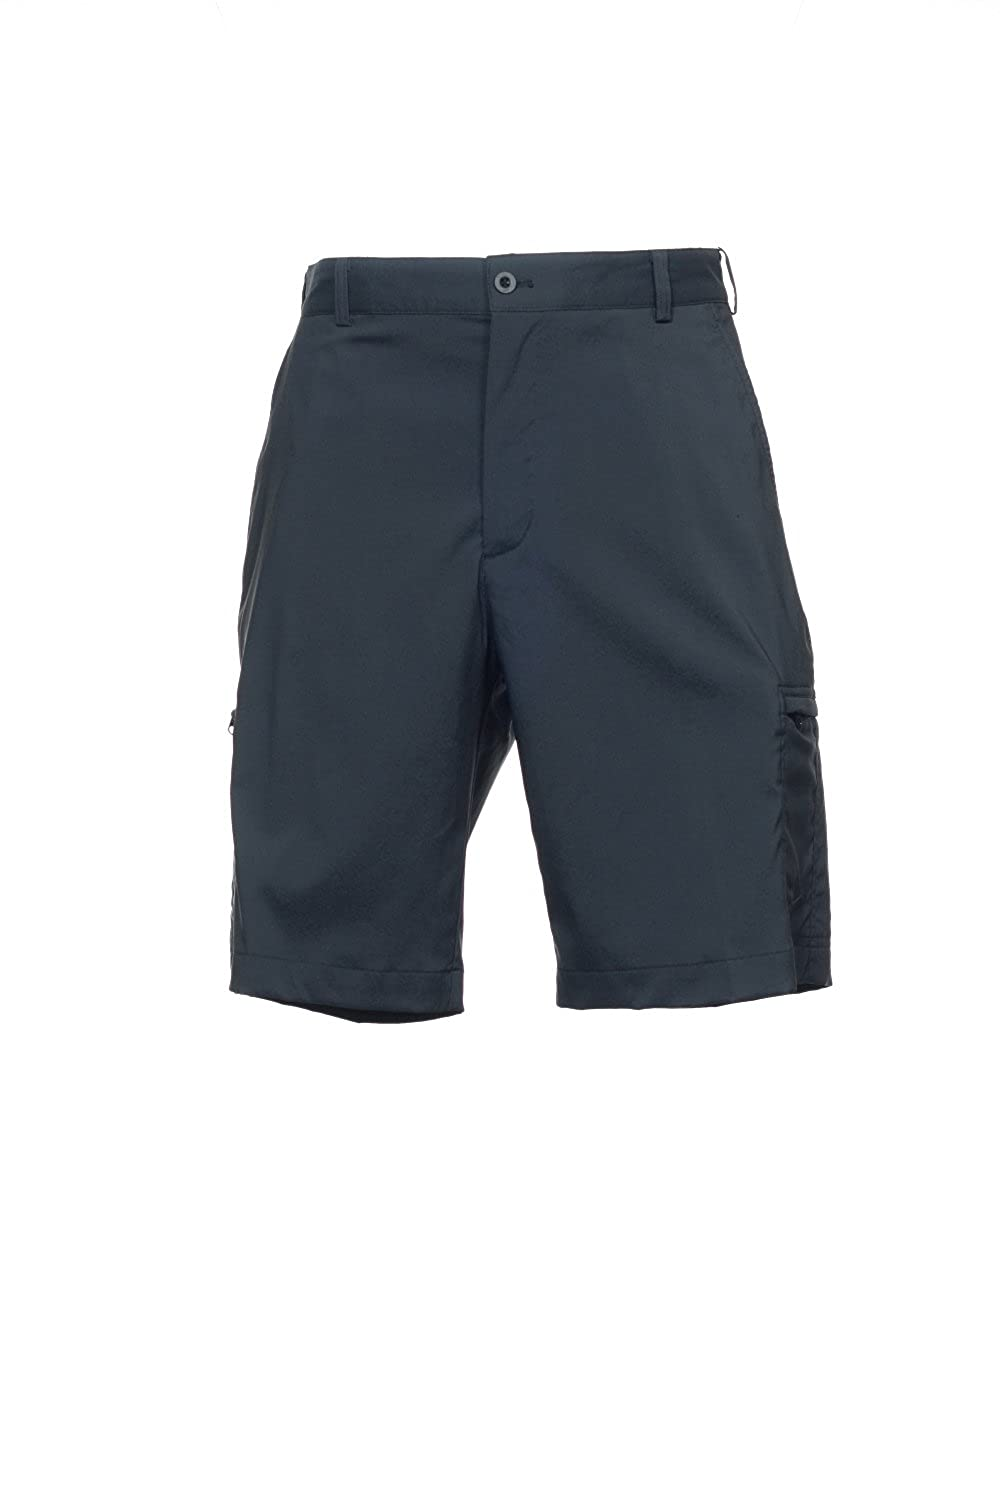 2a36f22e0995 Amazon.com  Nike Mens Golf Cargo Shorts  Clothing